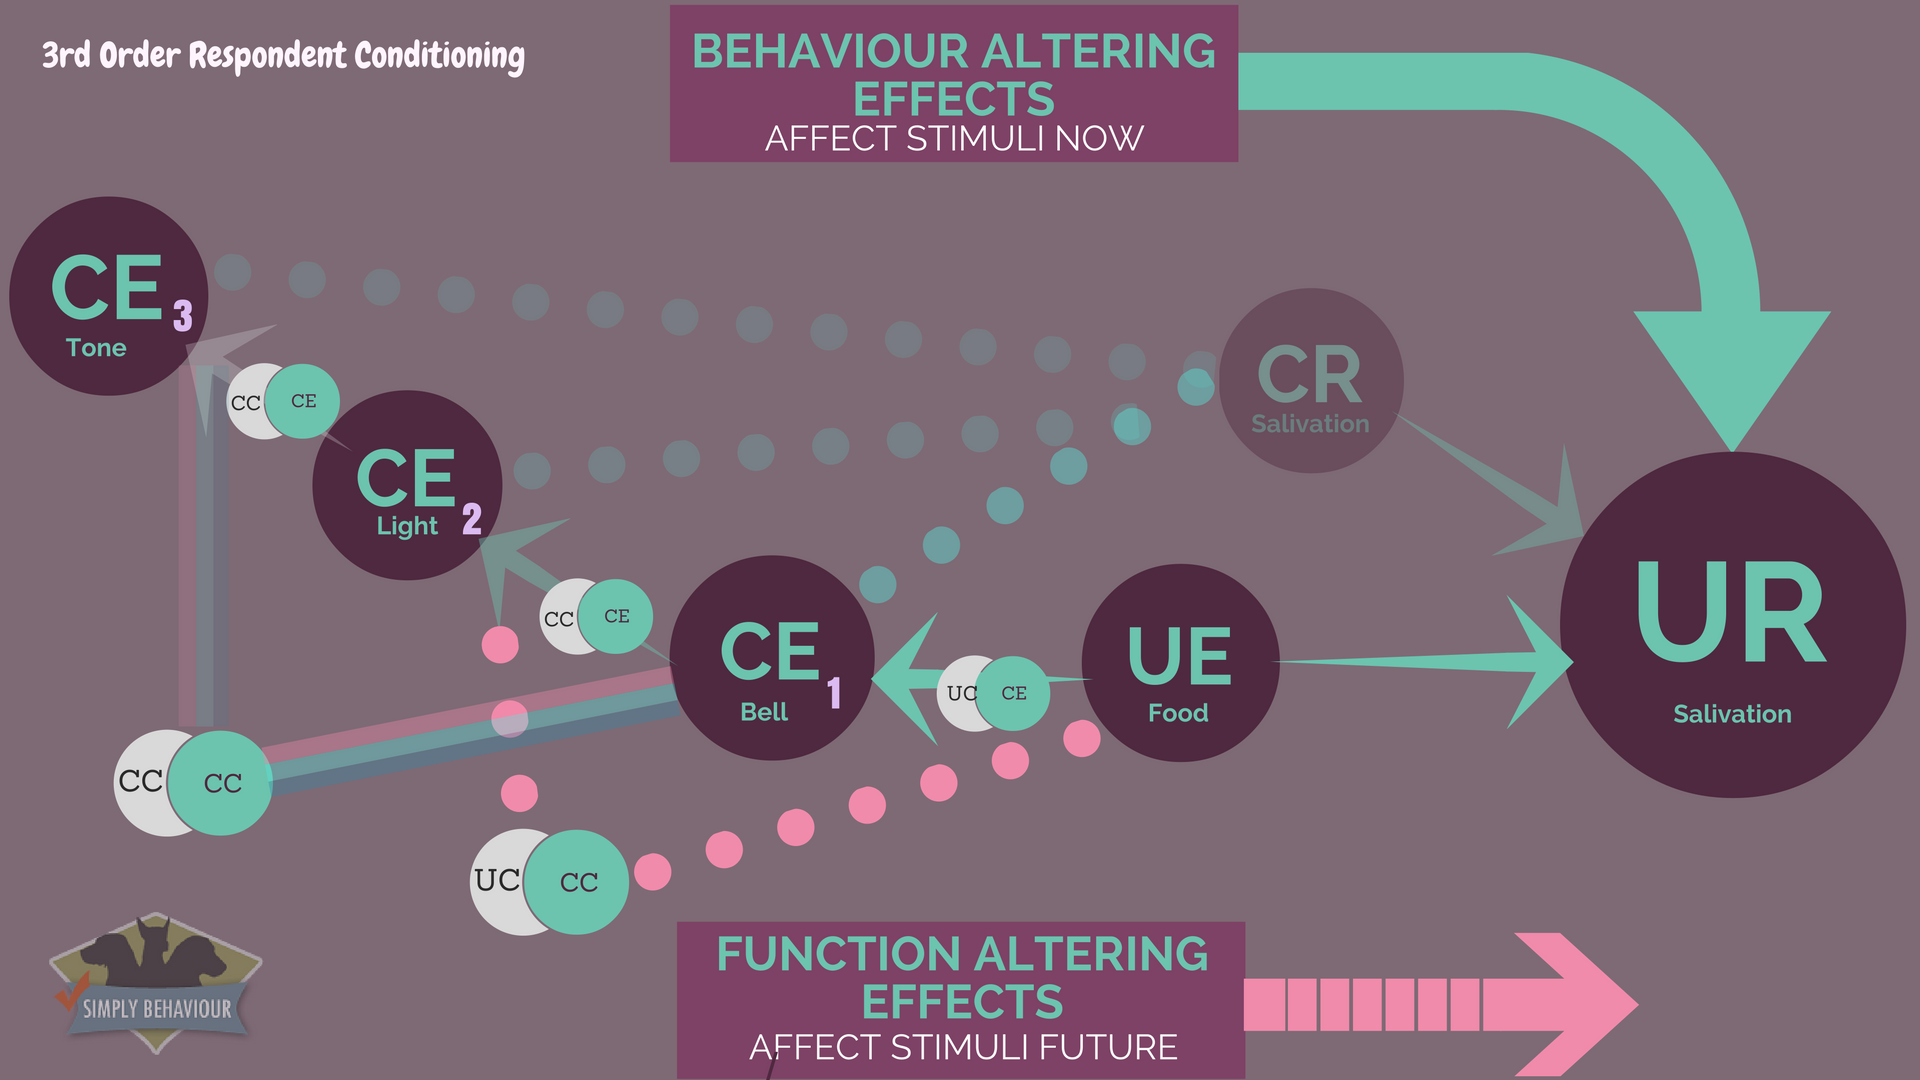 behaviour-altering-effects-2